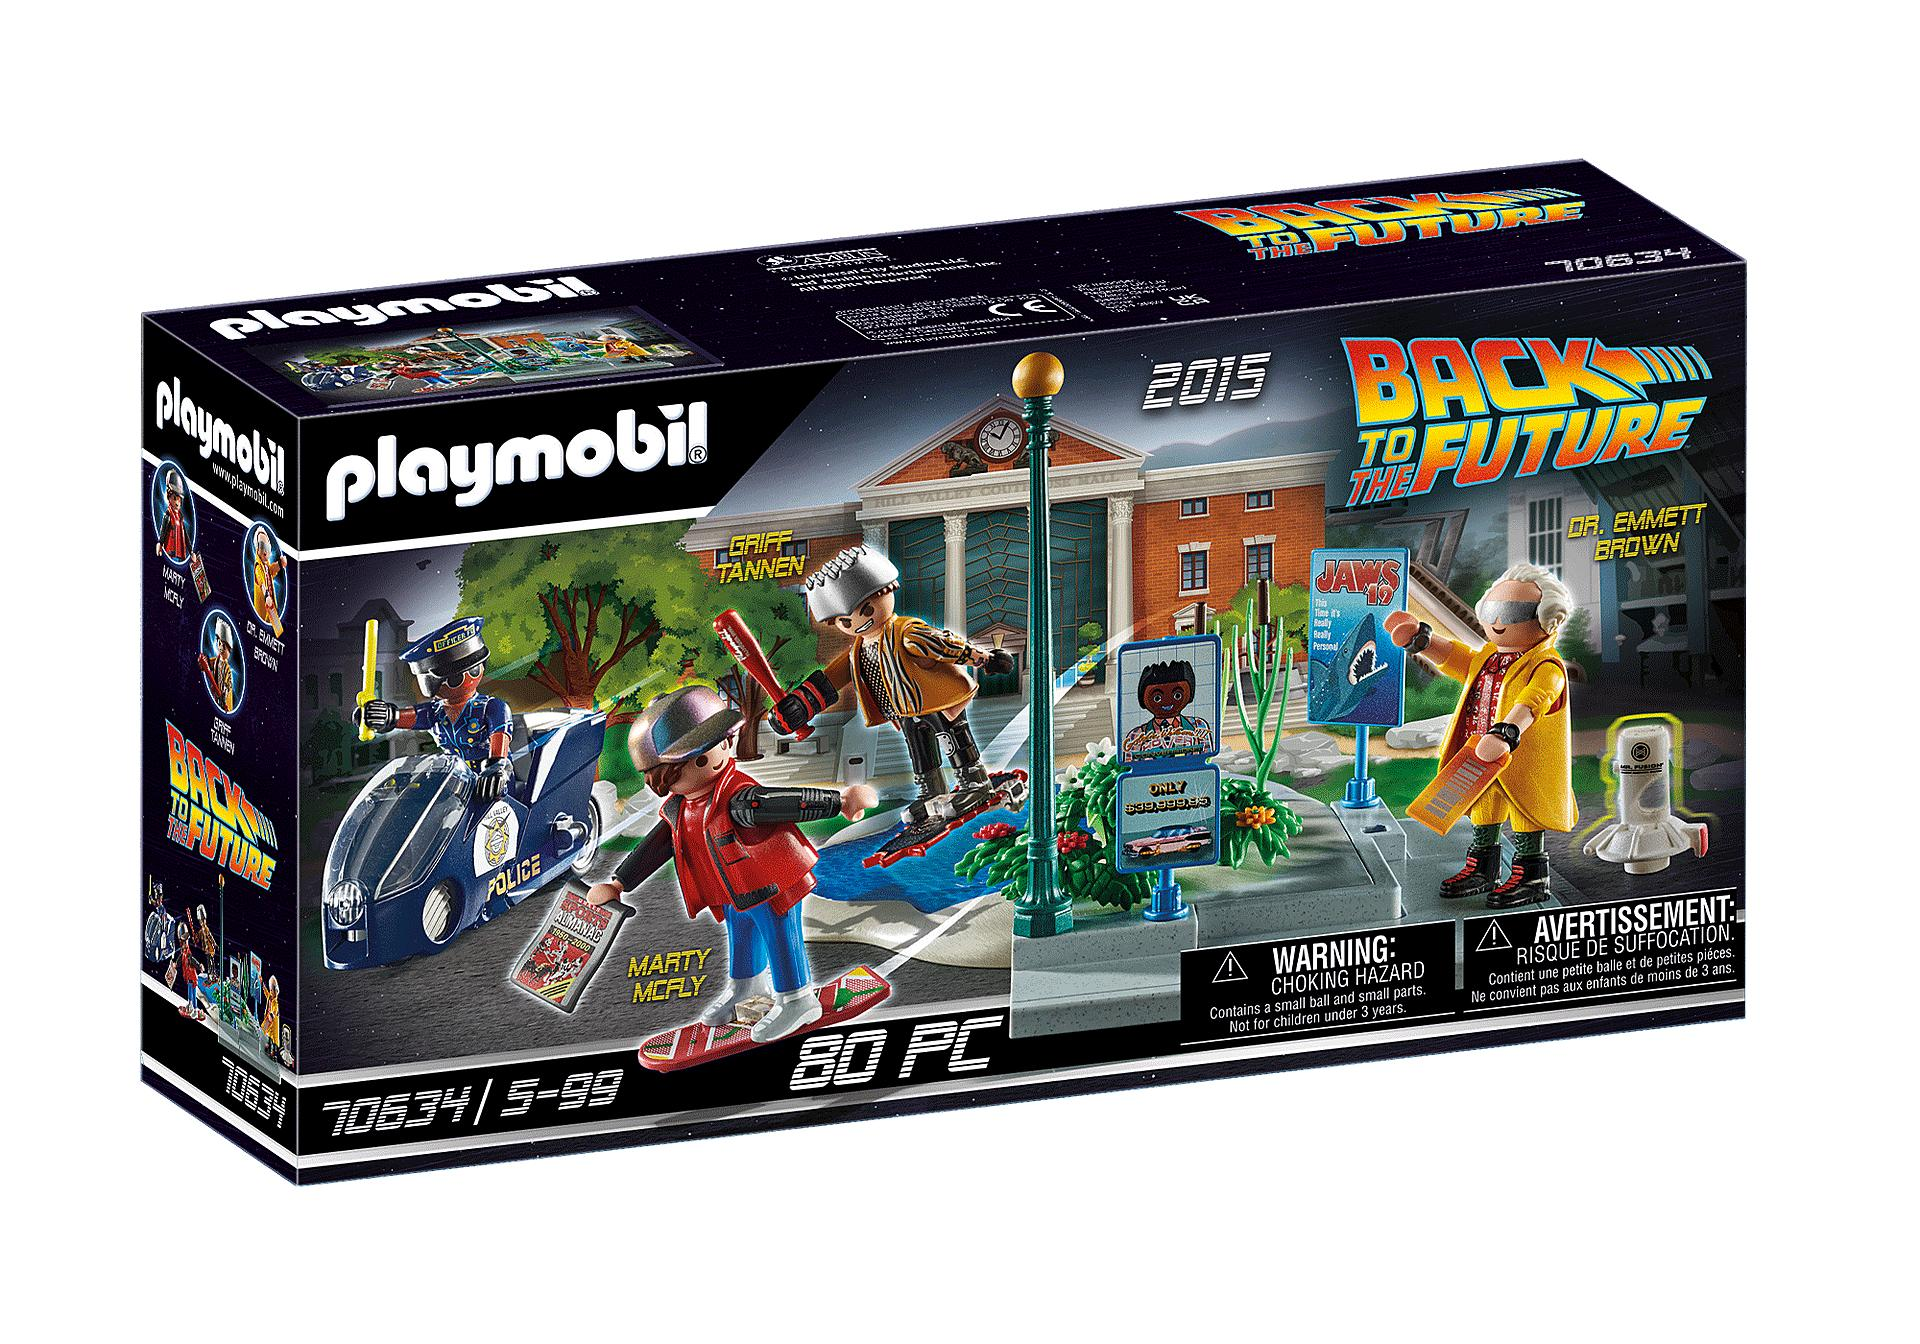 PLAYMOBIL 70634 BACK TO THE FUTURE, PARTE II PERSECUCION